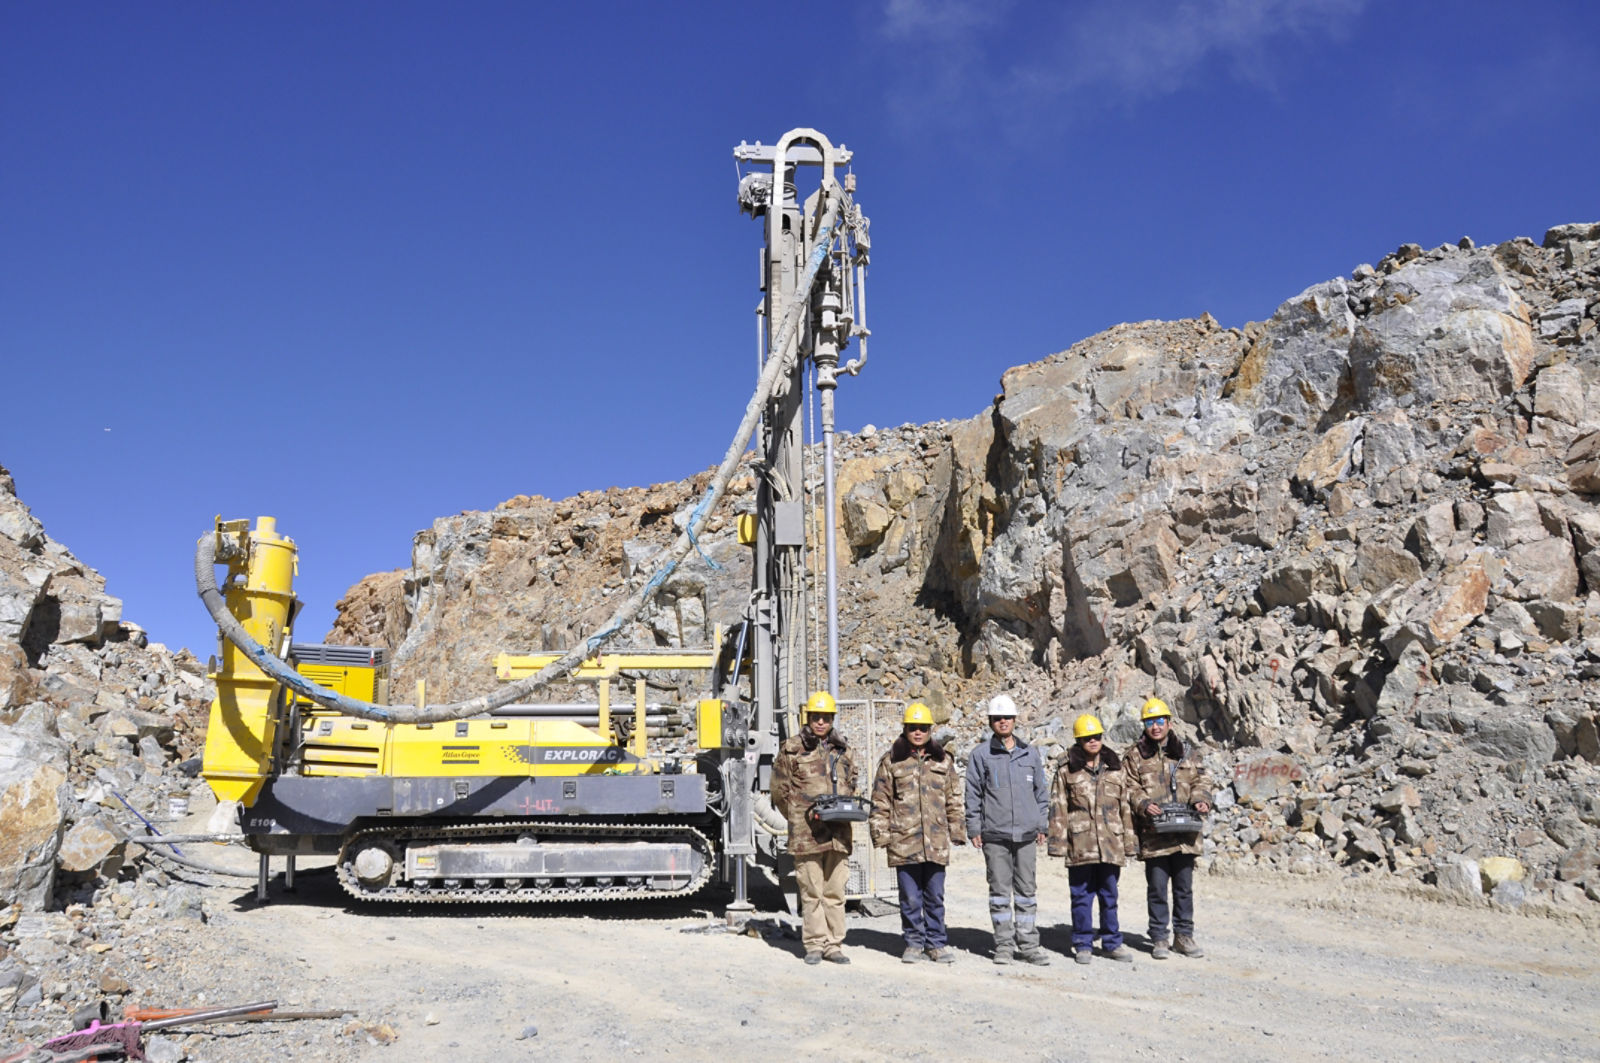 Explorac 100 reverse circulation drill rig